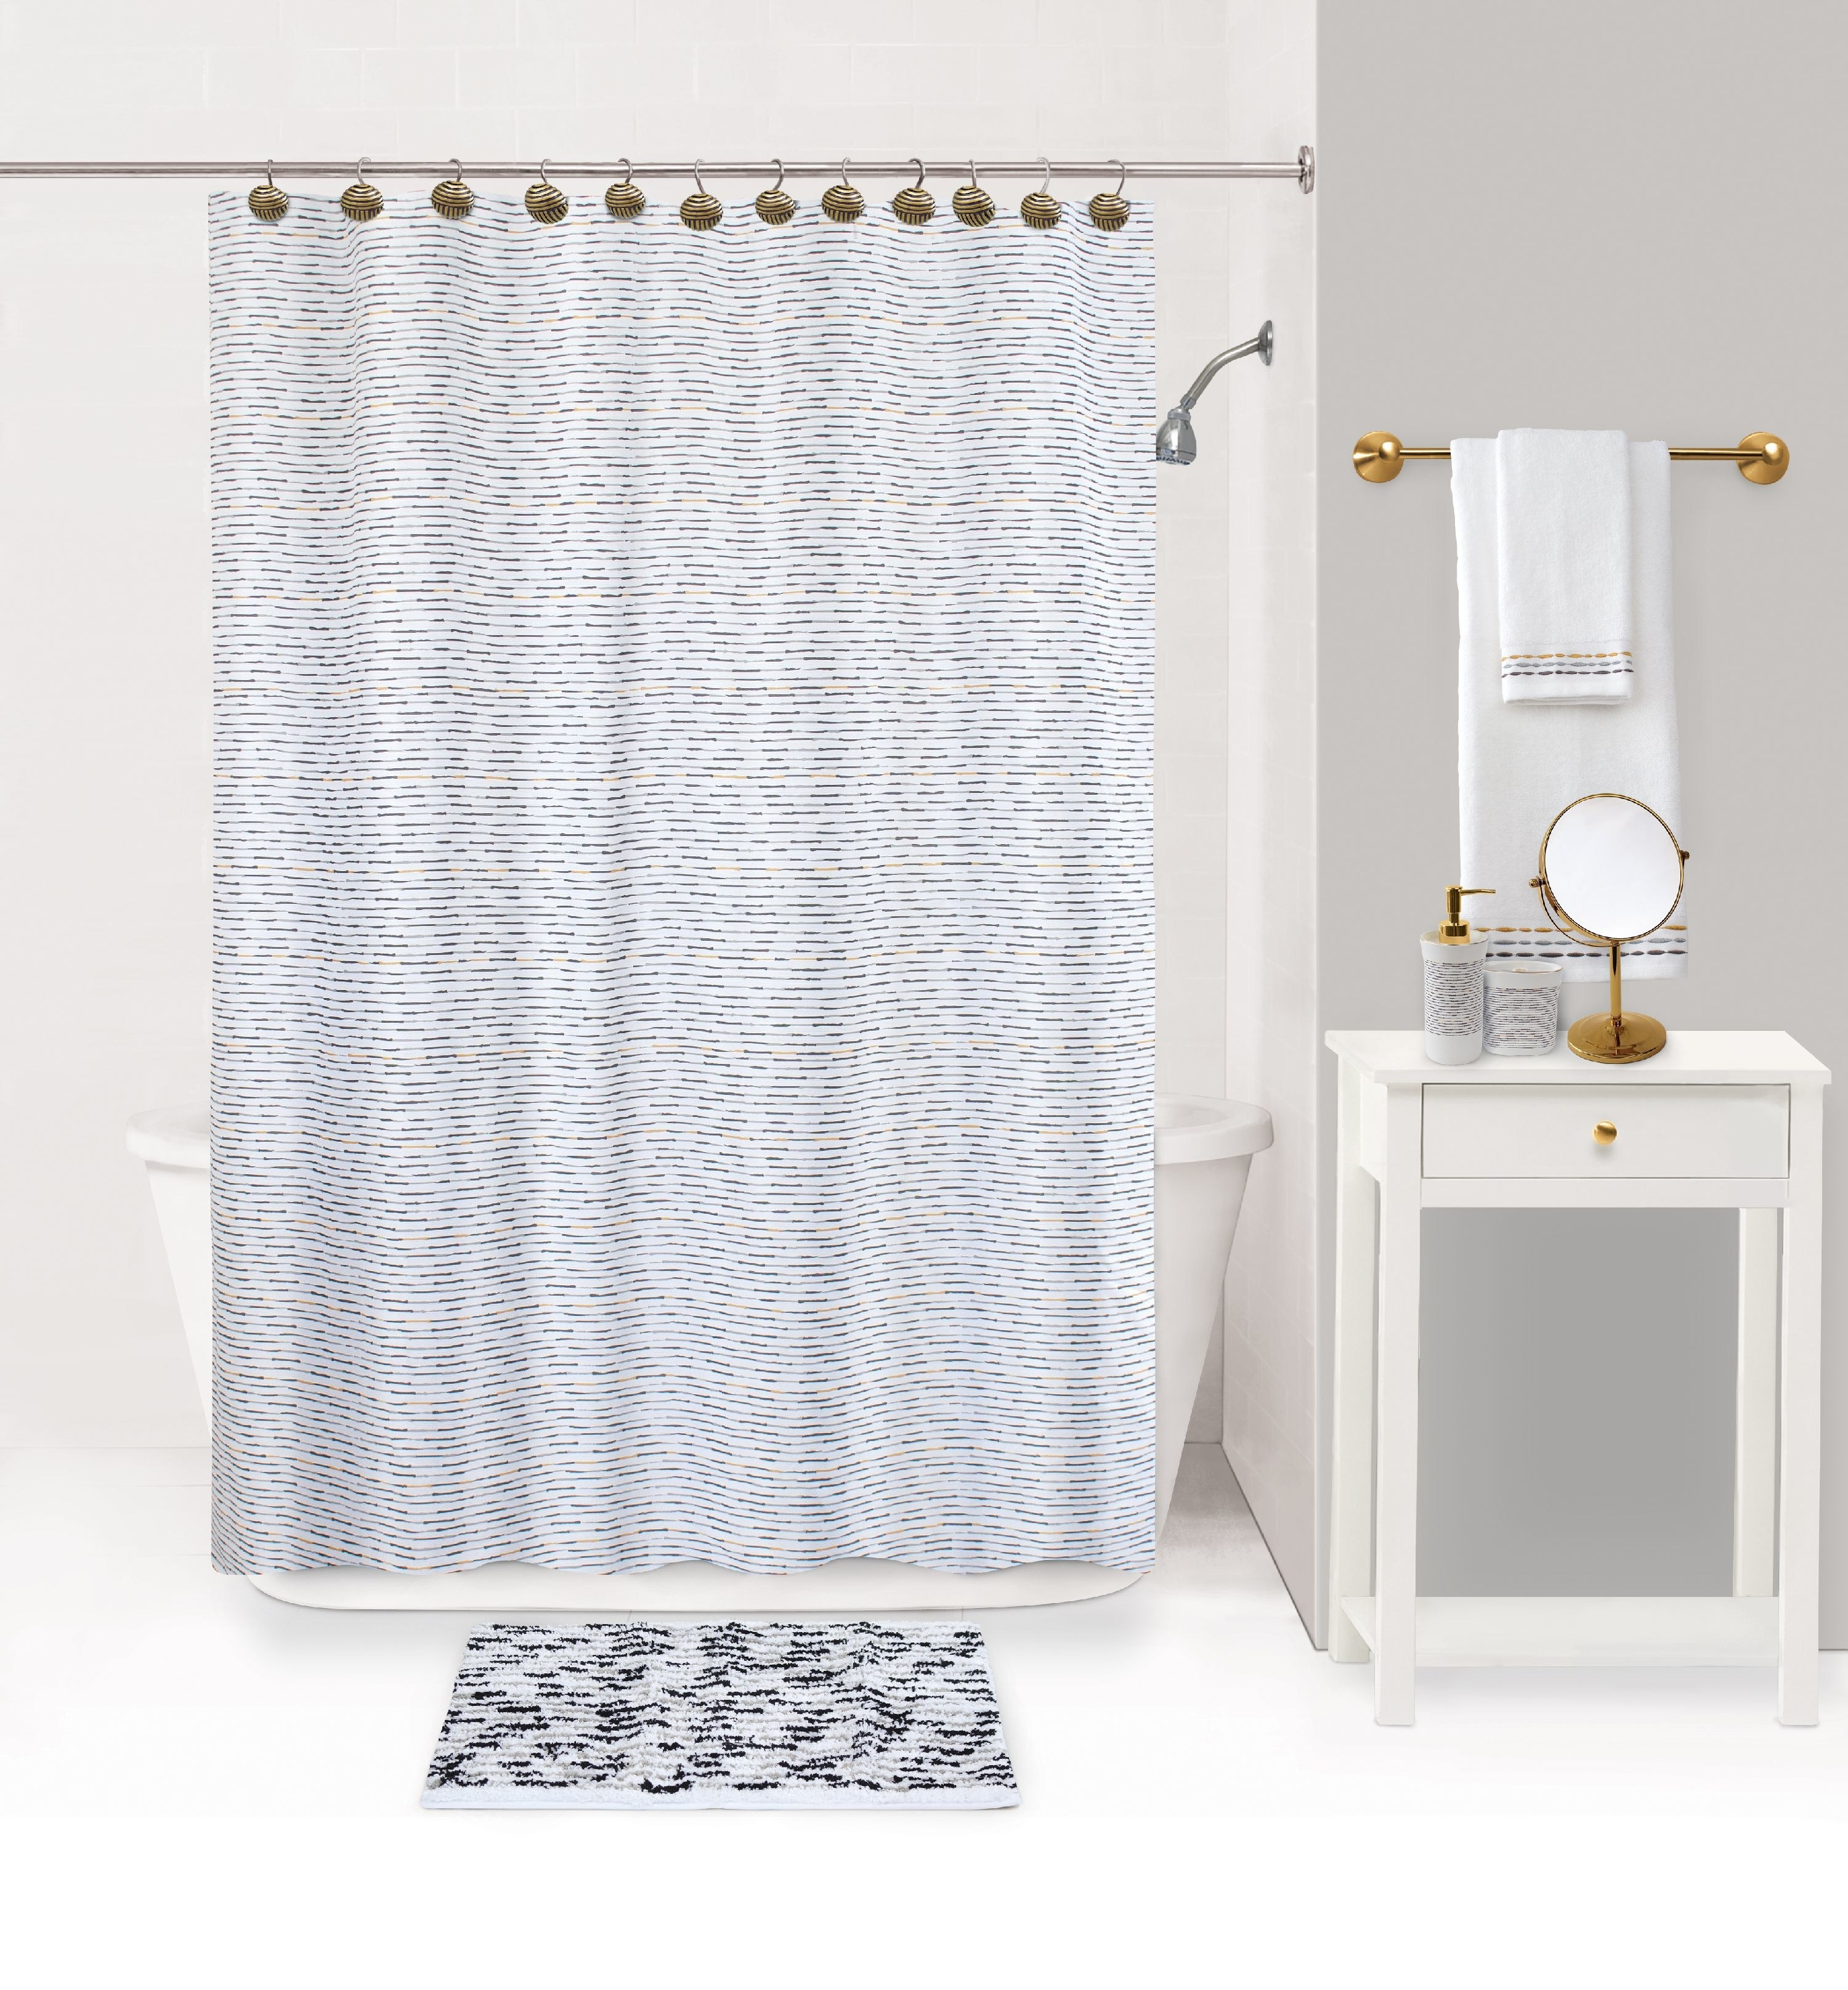 bathroom with a shower curtain, rug, and accessories in it